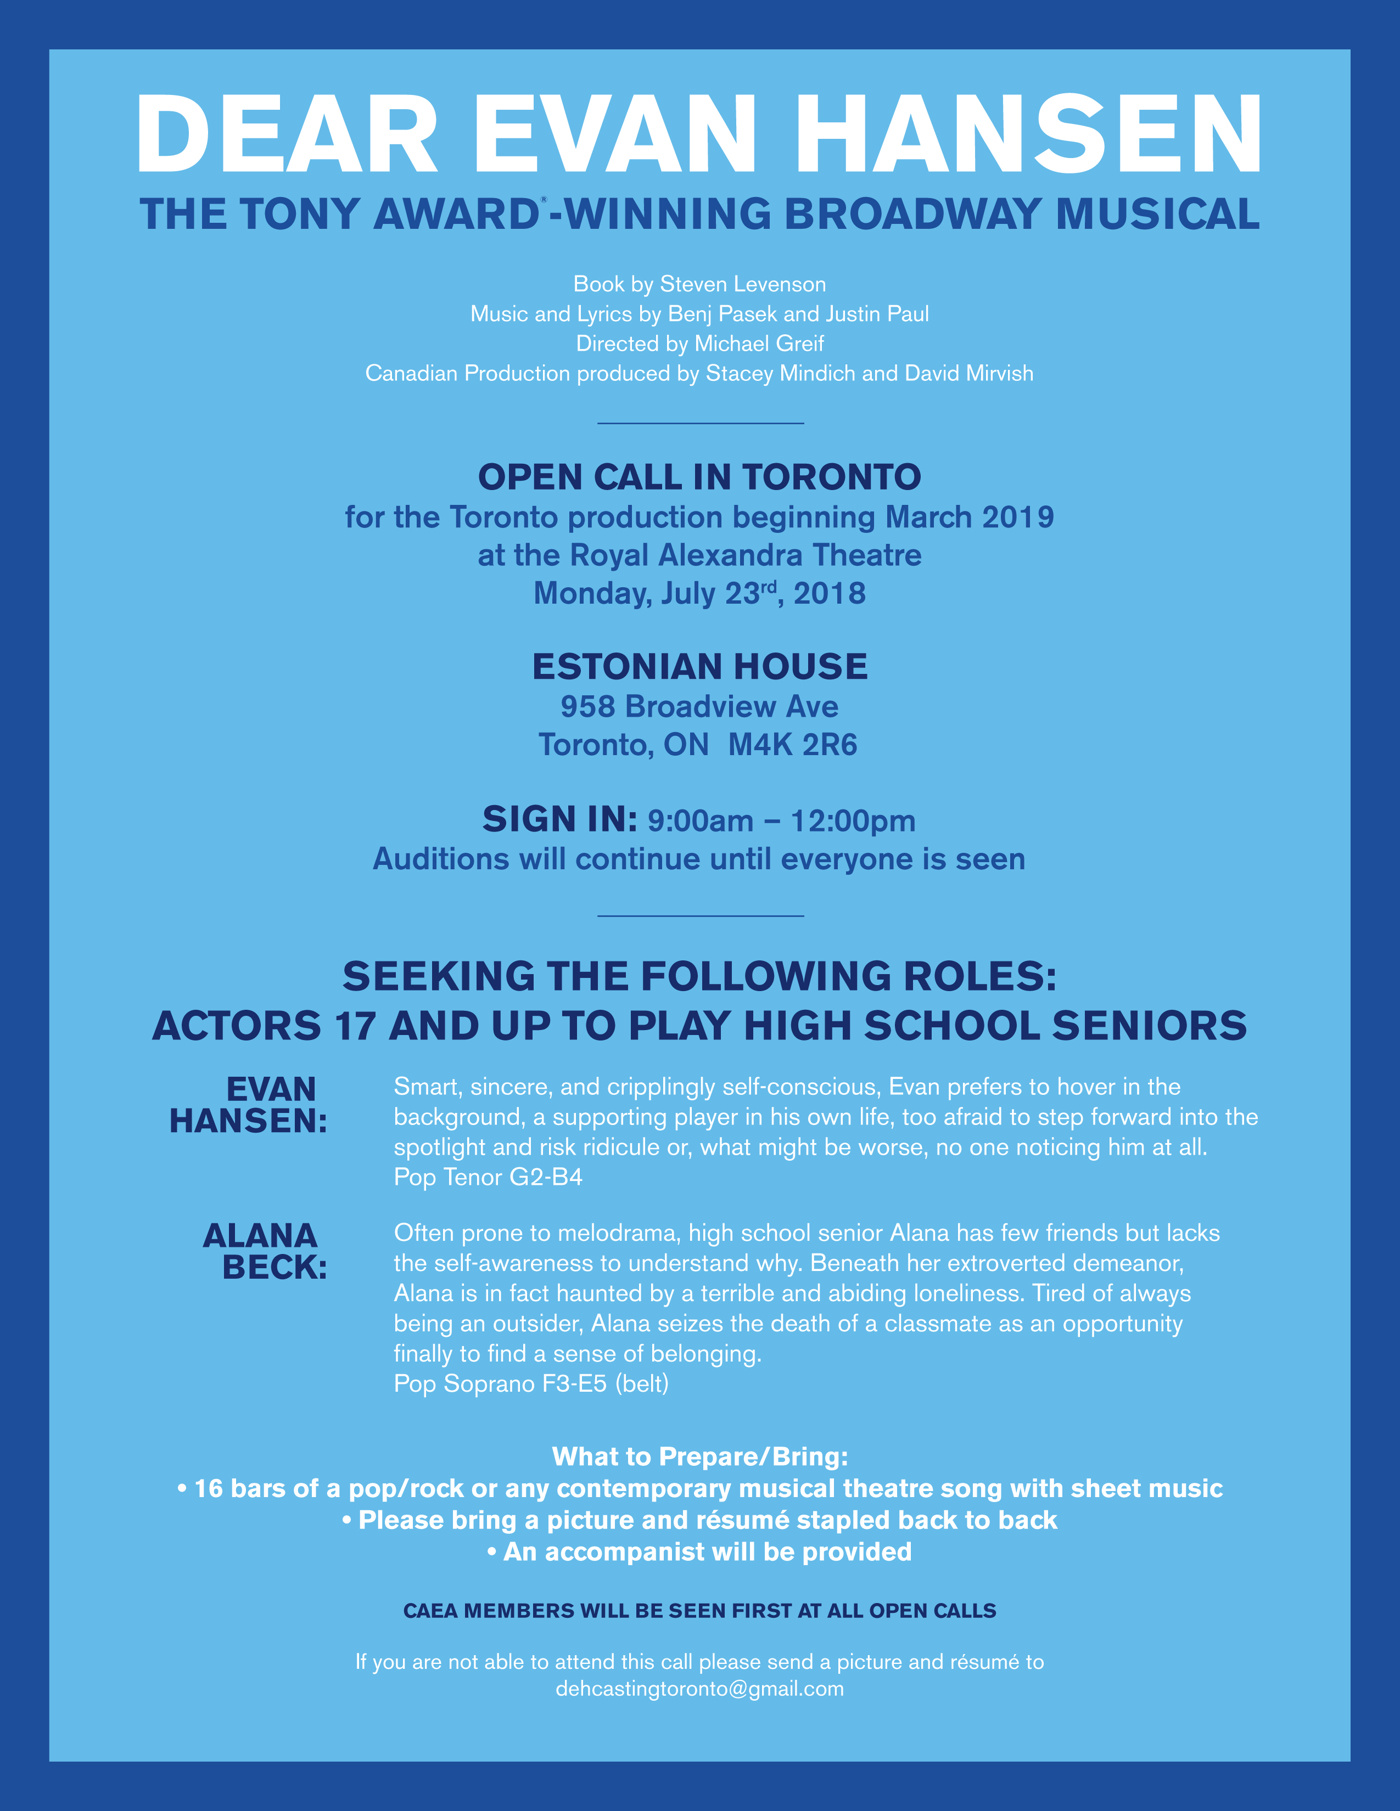 Odds & Ends: Dear Evan Hansen to Hold Open Casting Call in